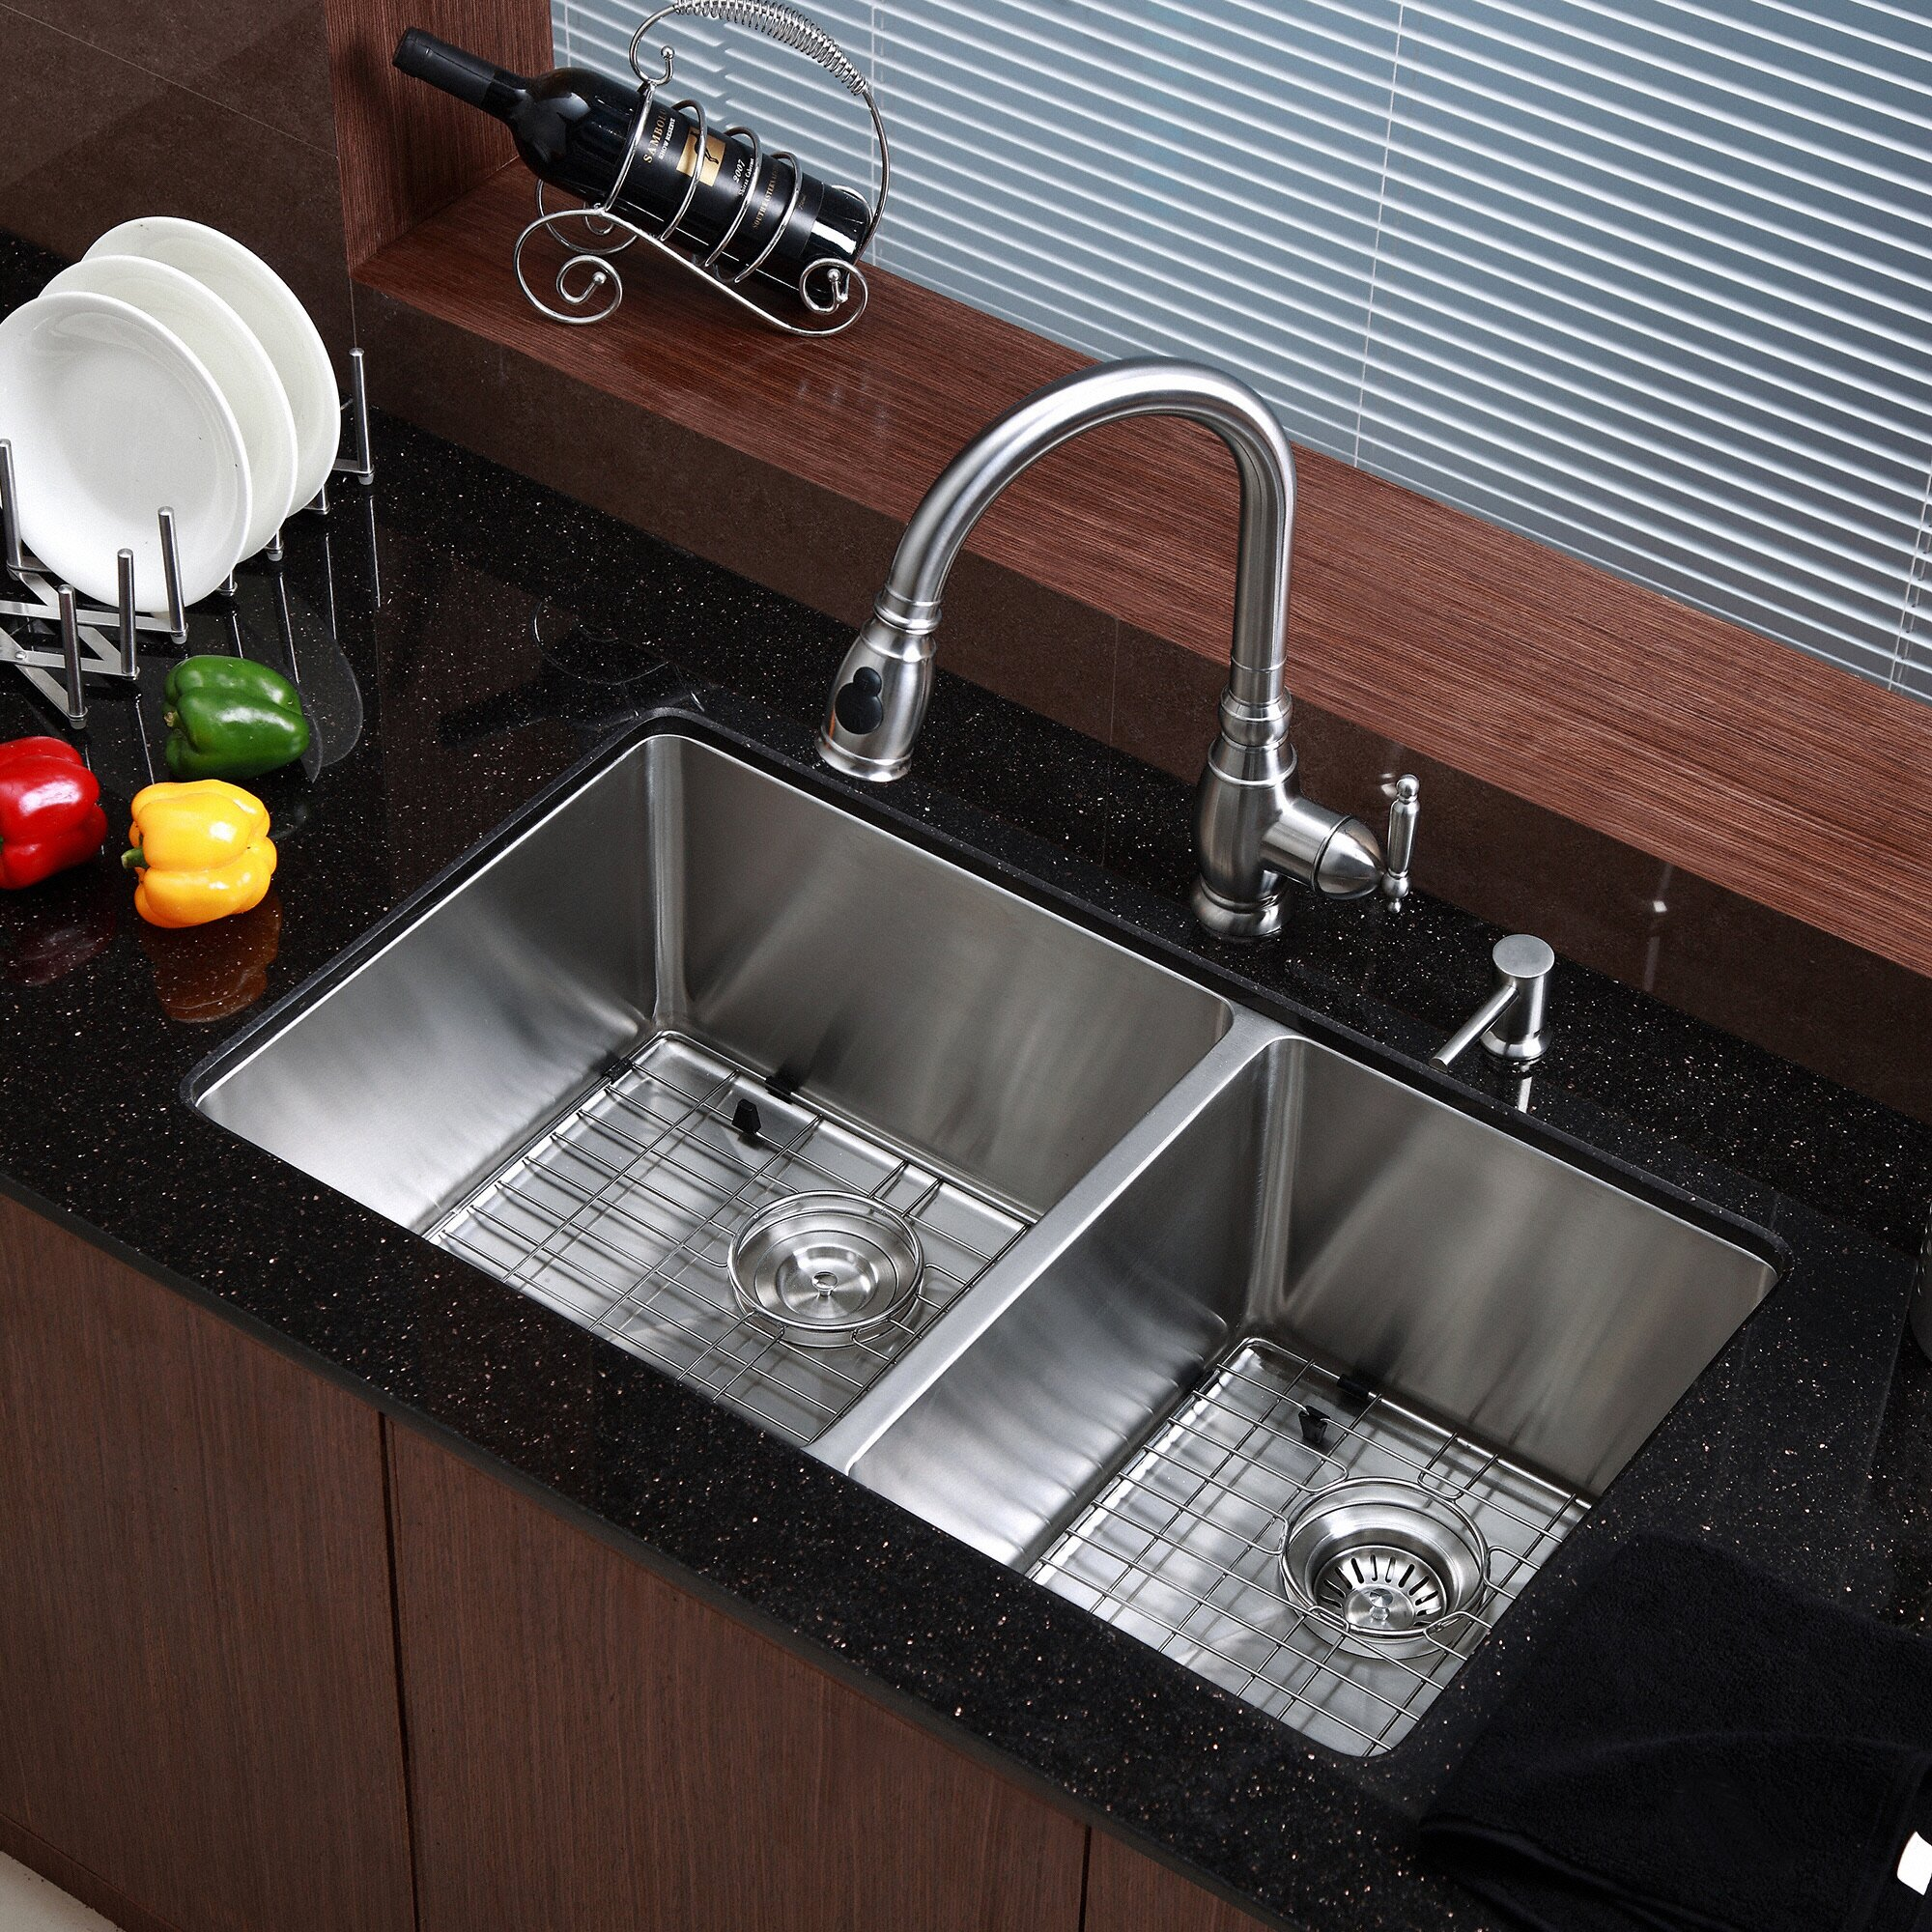 Granite Undermount Kitchen Sinks Kraus Stainless Steel 3275 X 19 Double Bowl Undermount Kitchen